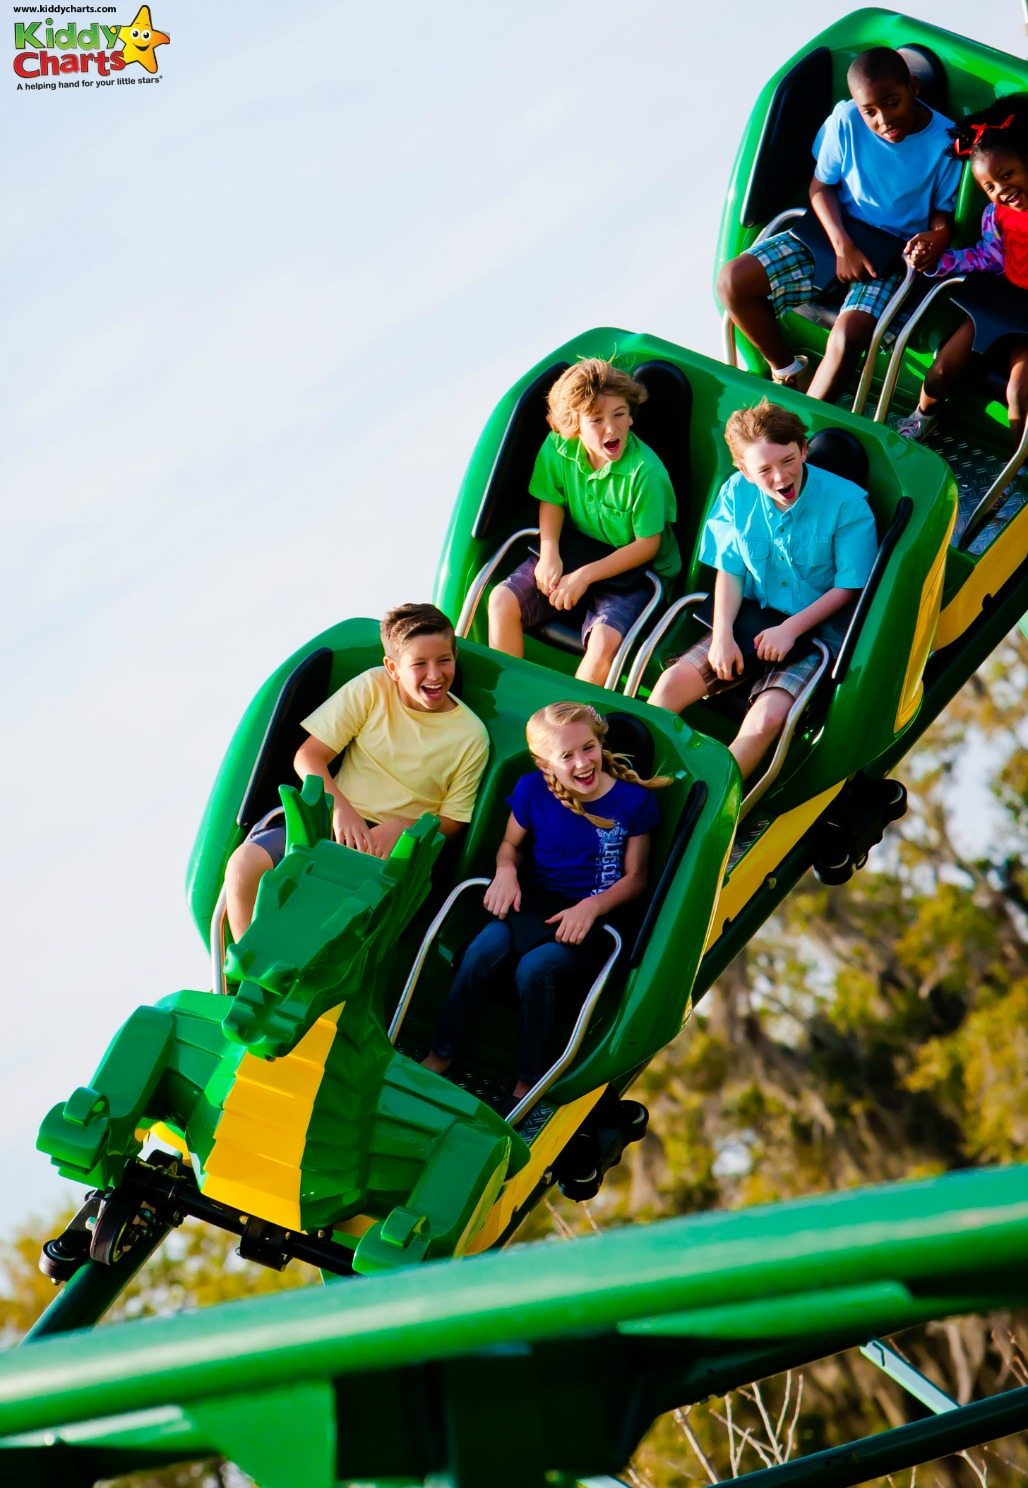 Legoland Florida has some great rollercoasters for the kids - a lovely intro for some of the faster ones that you can find at some of the Florida theme parks!